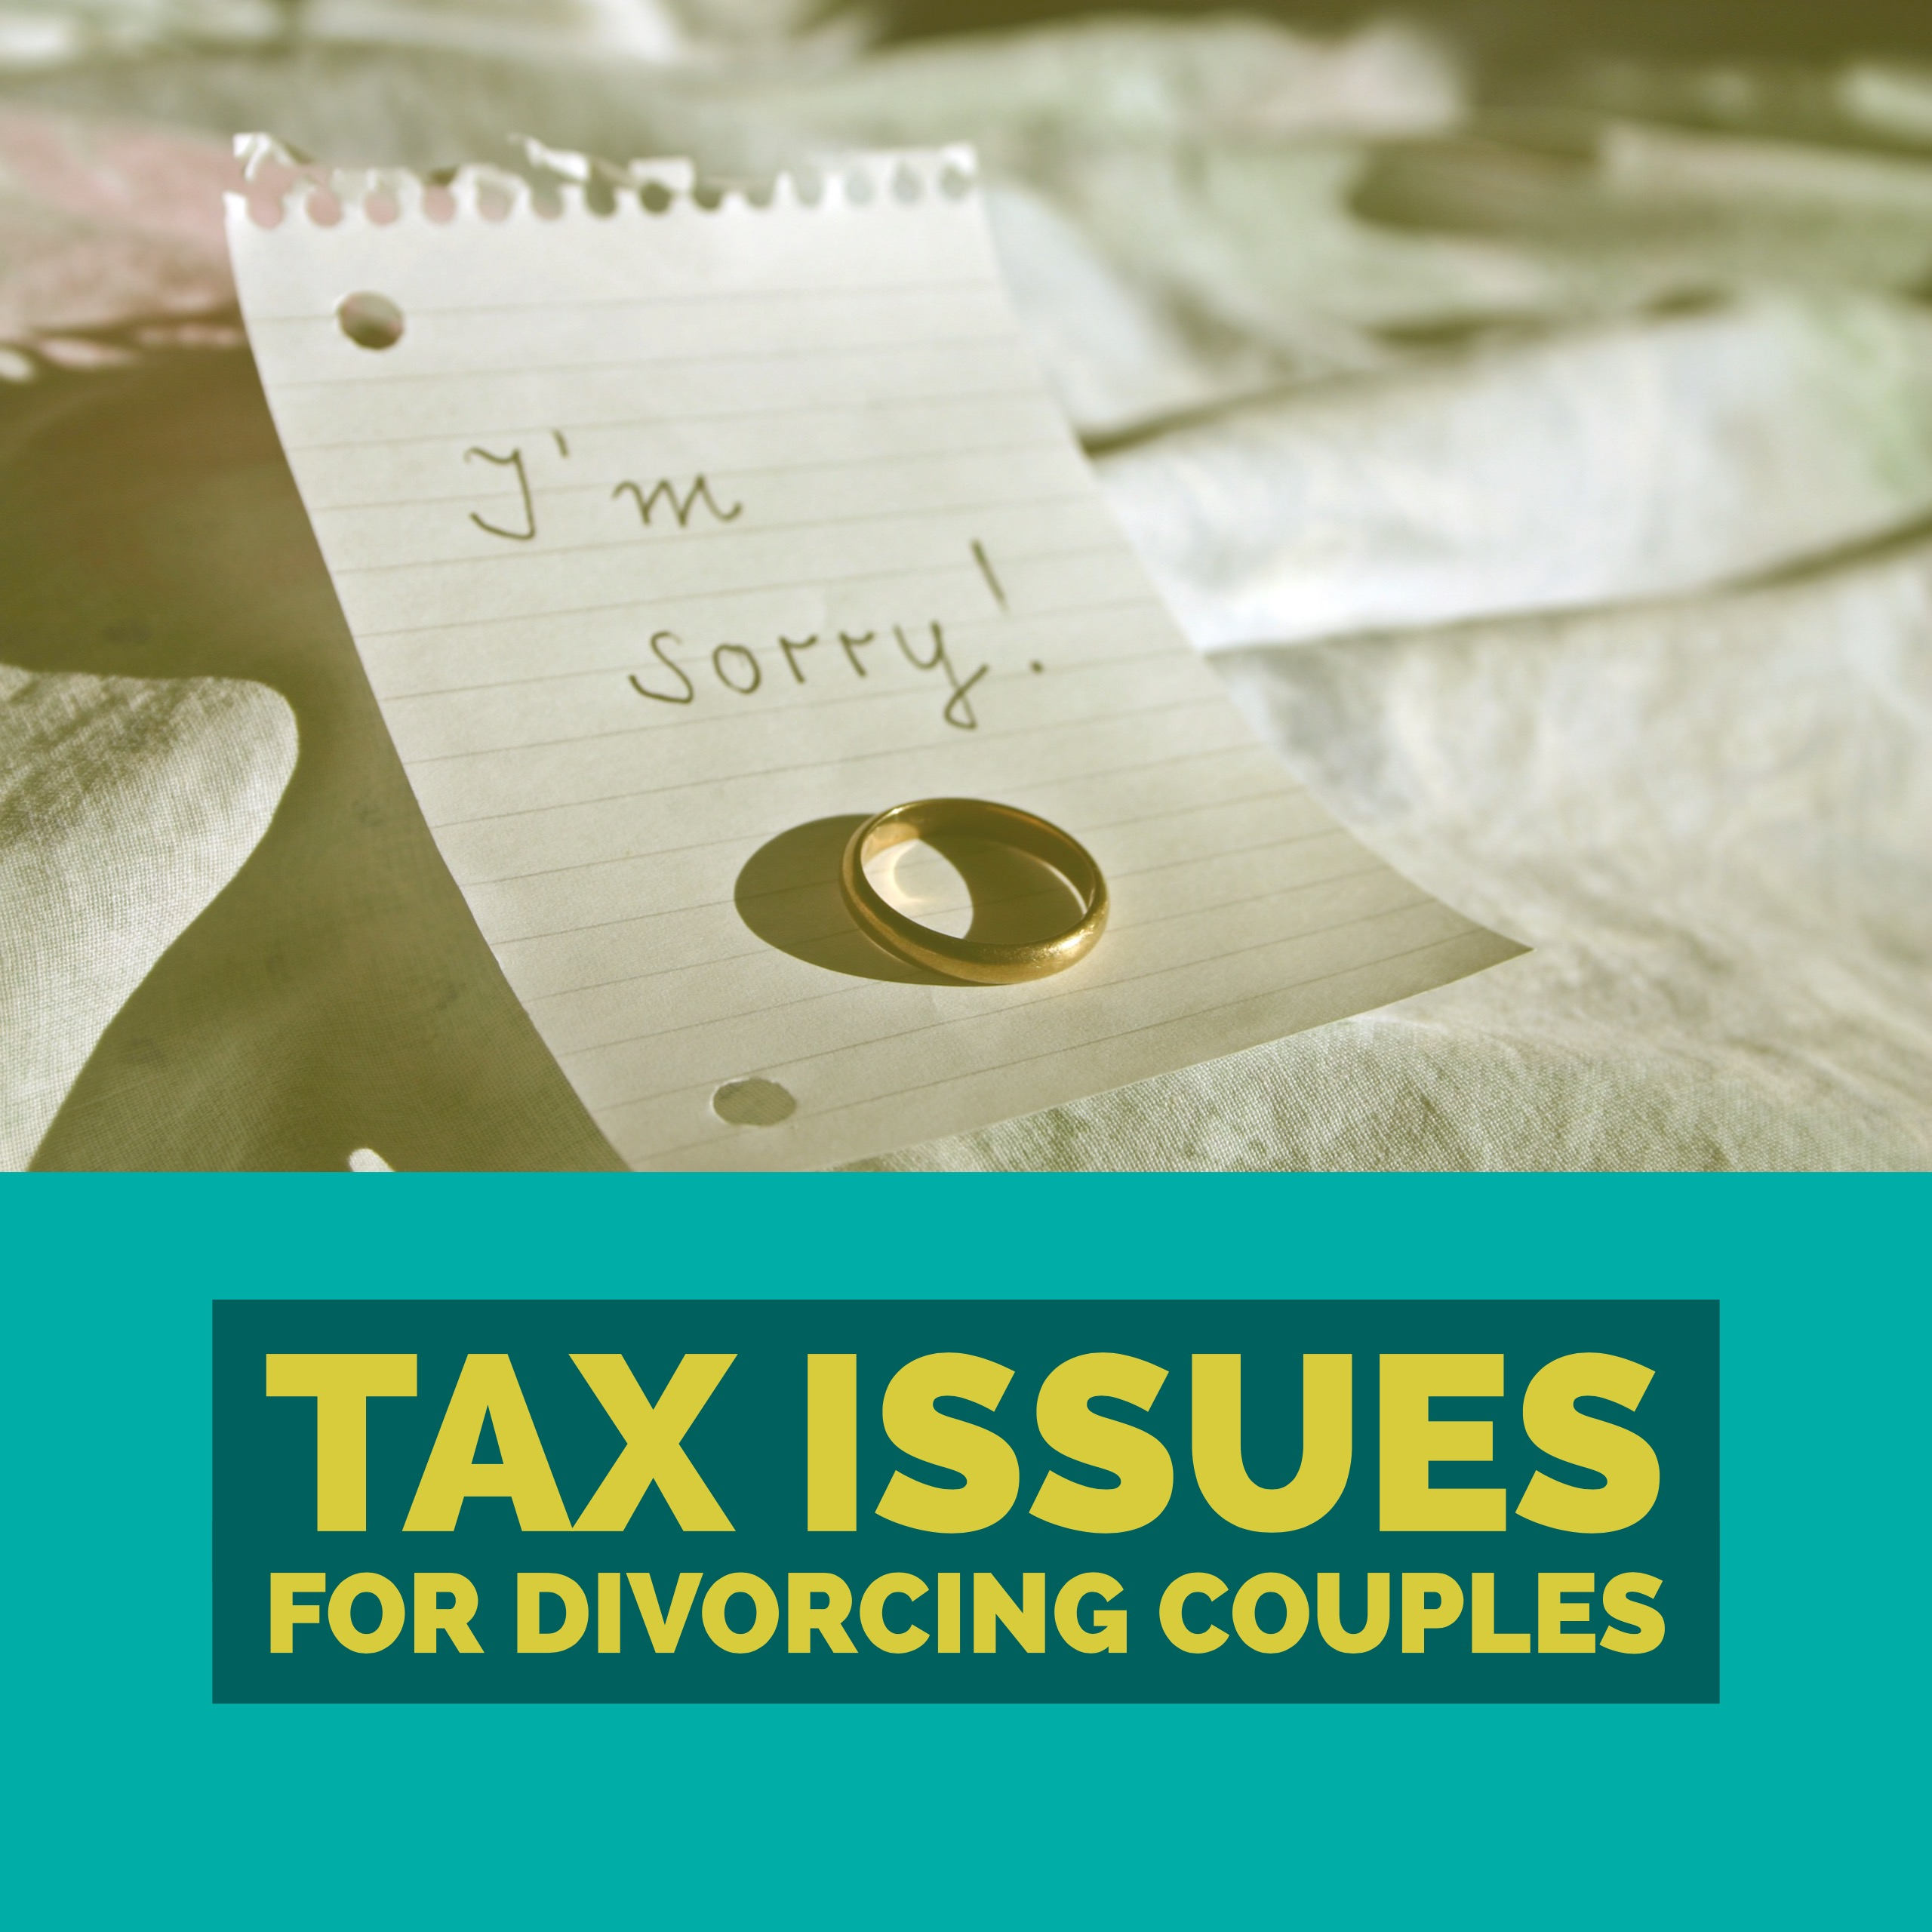 Married filing separately living apart